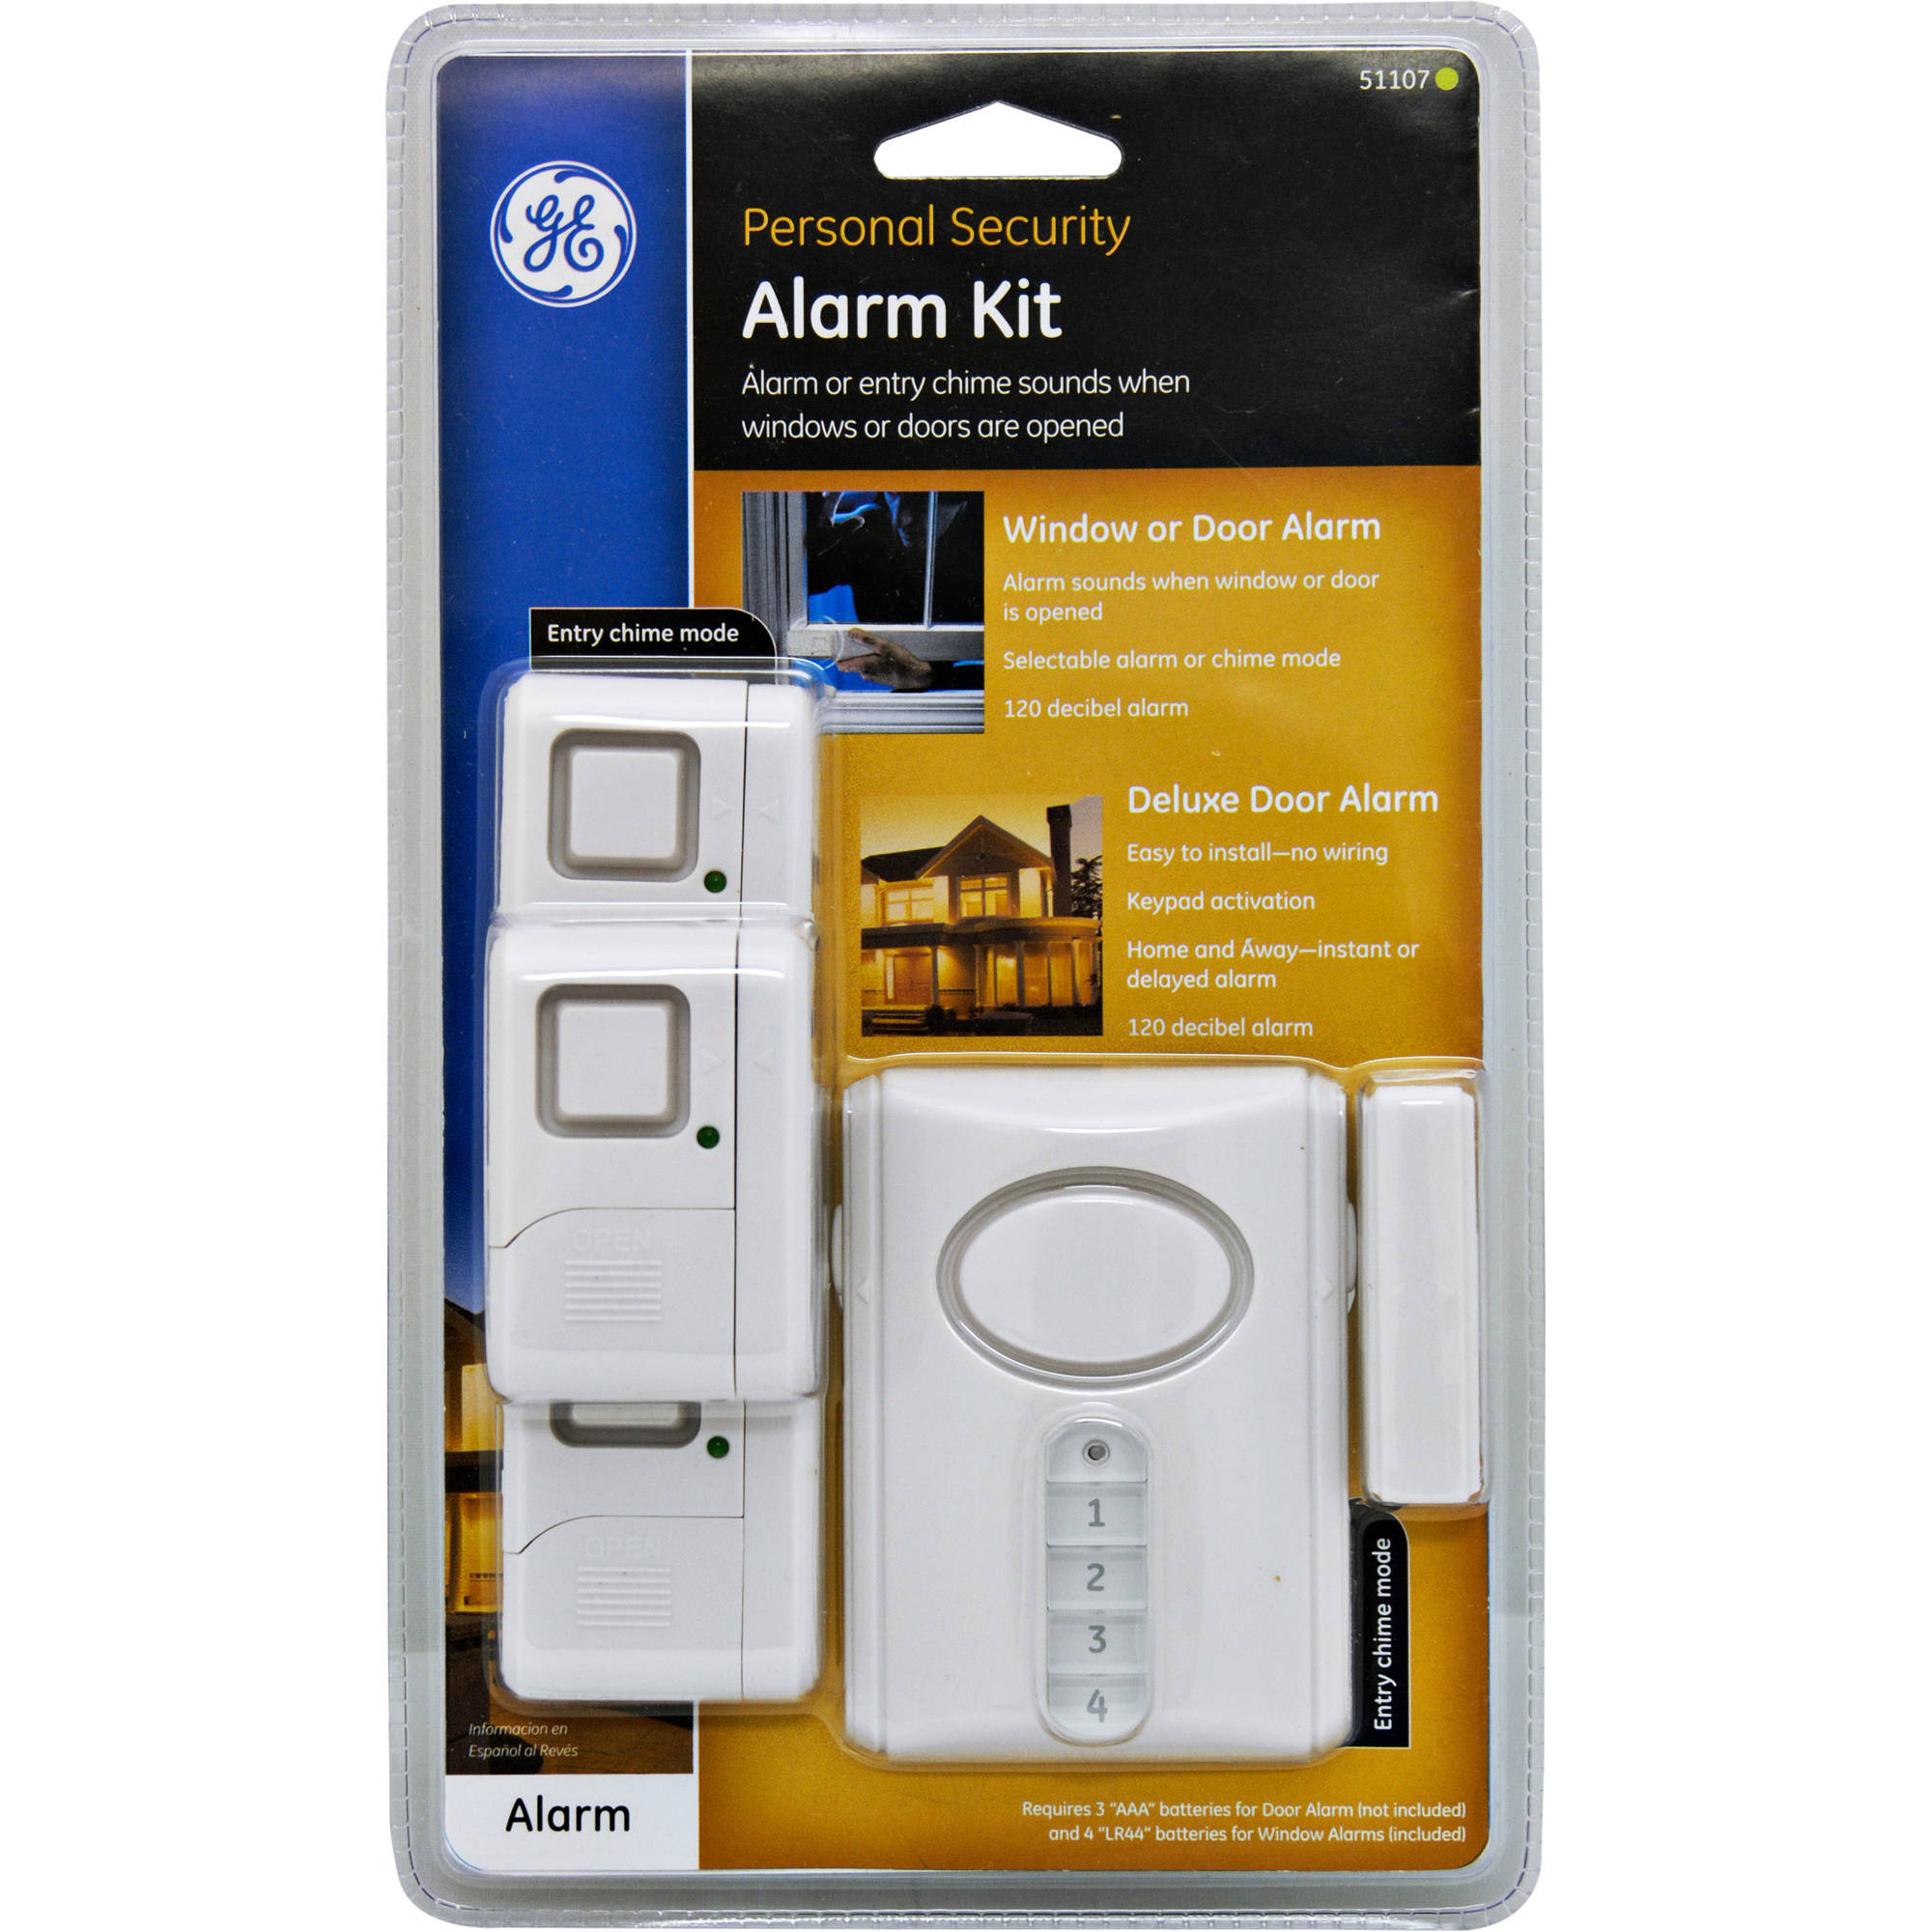 Le Meilleur Alarm Doors A Techko Pool Entry Security Alarm Model Ce Mois Ci